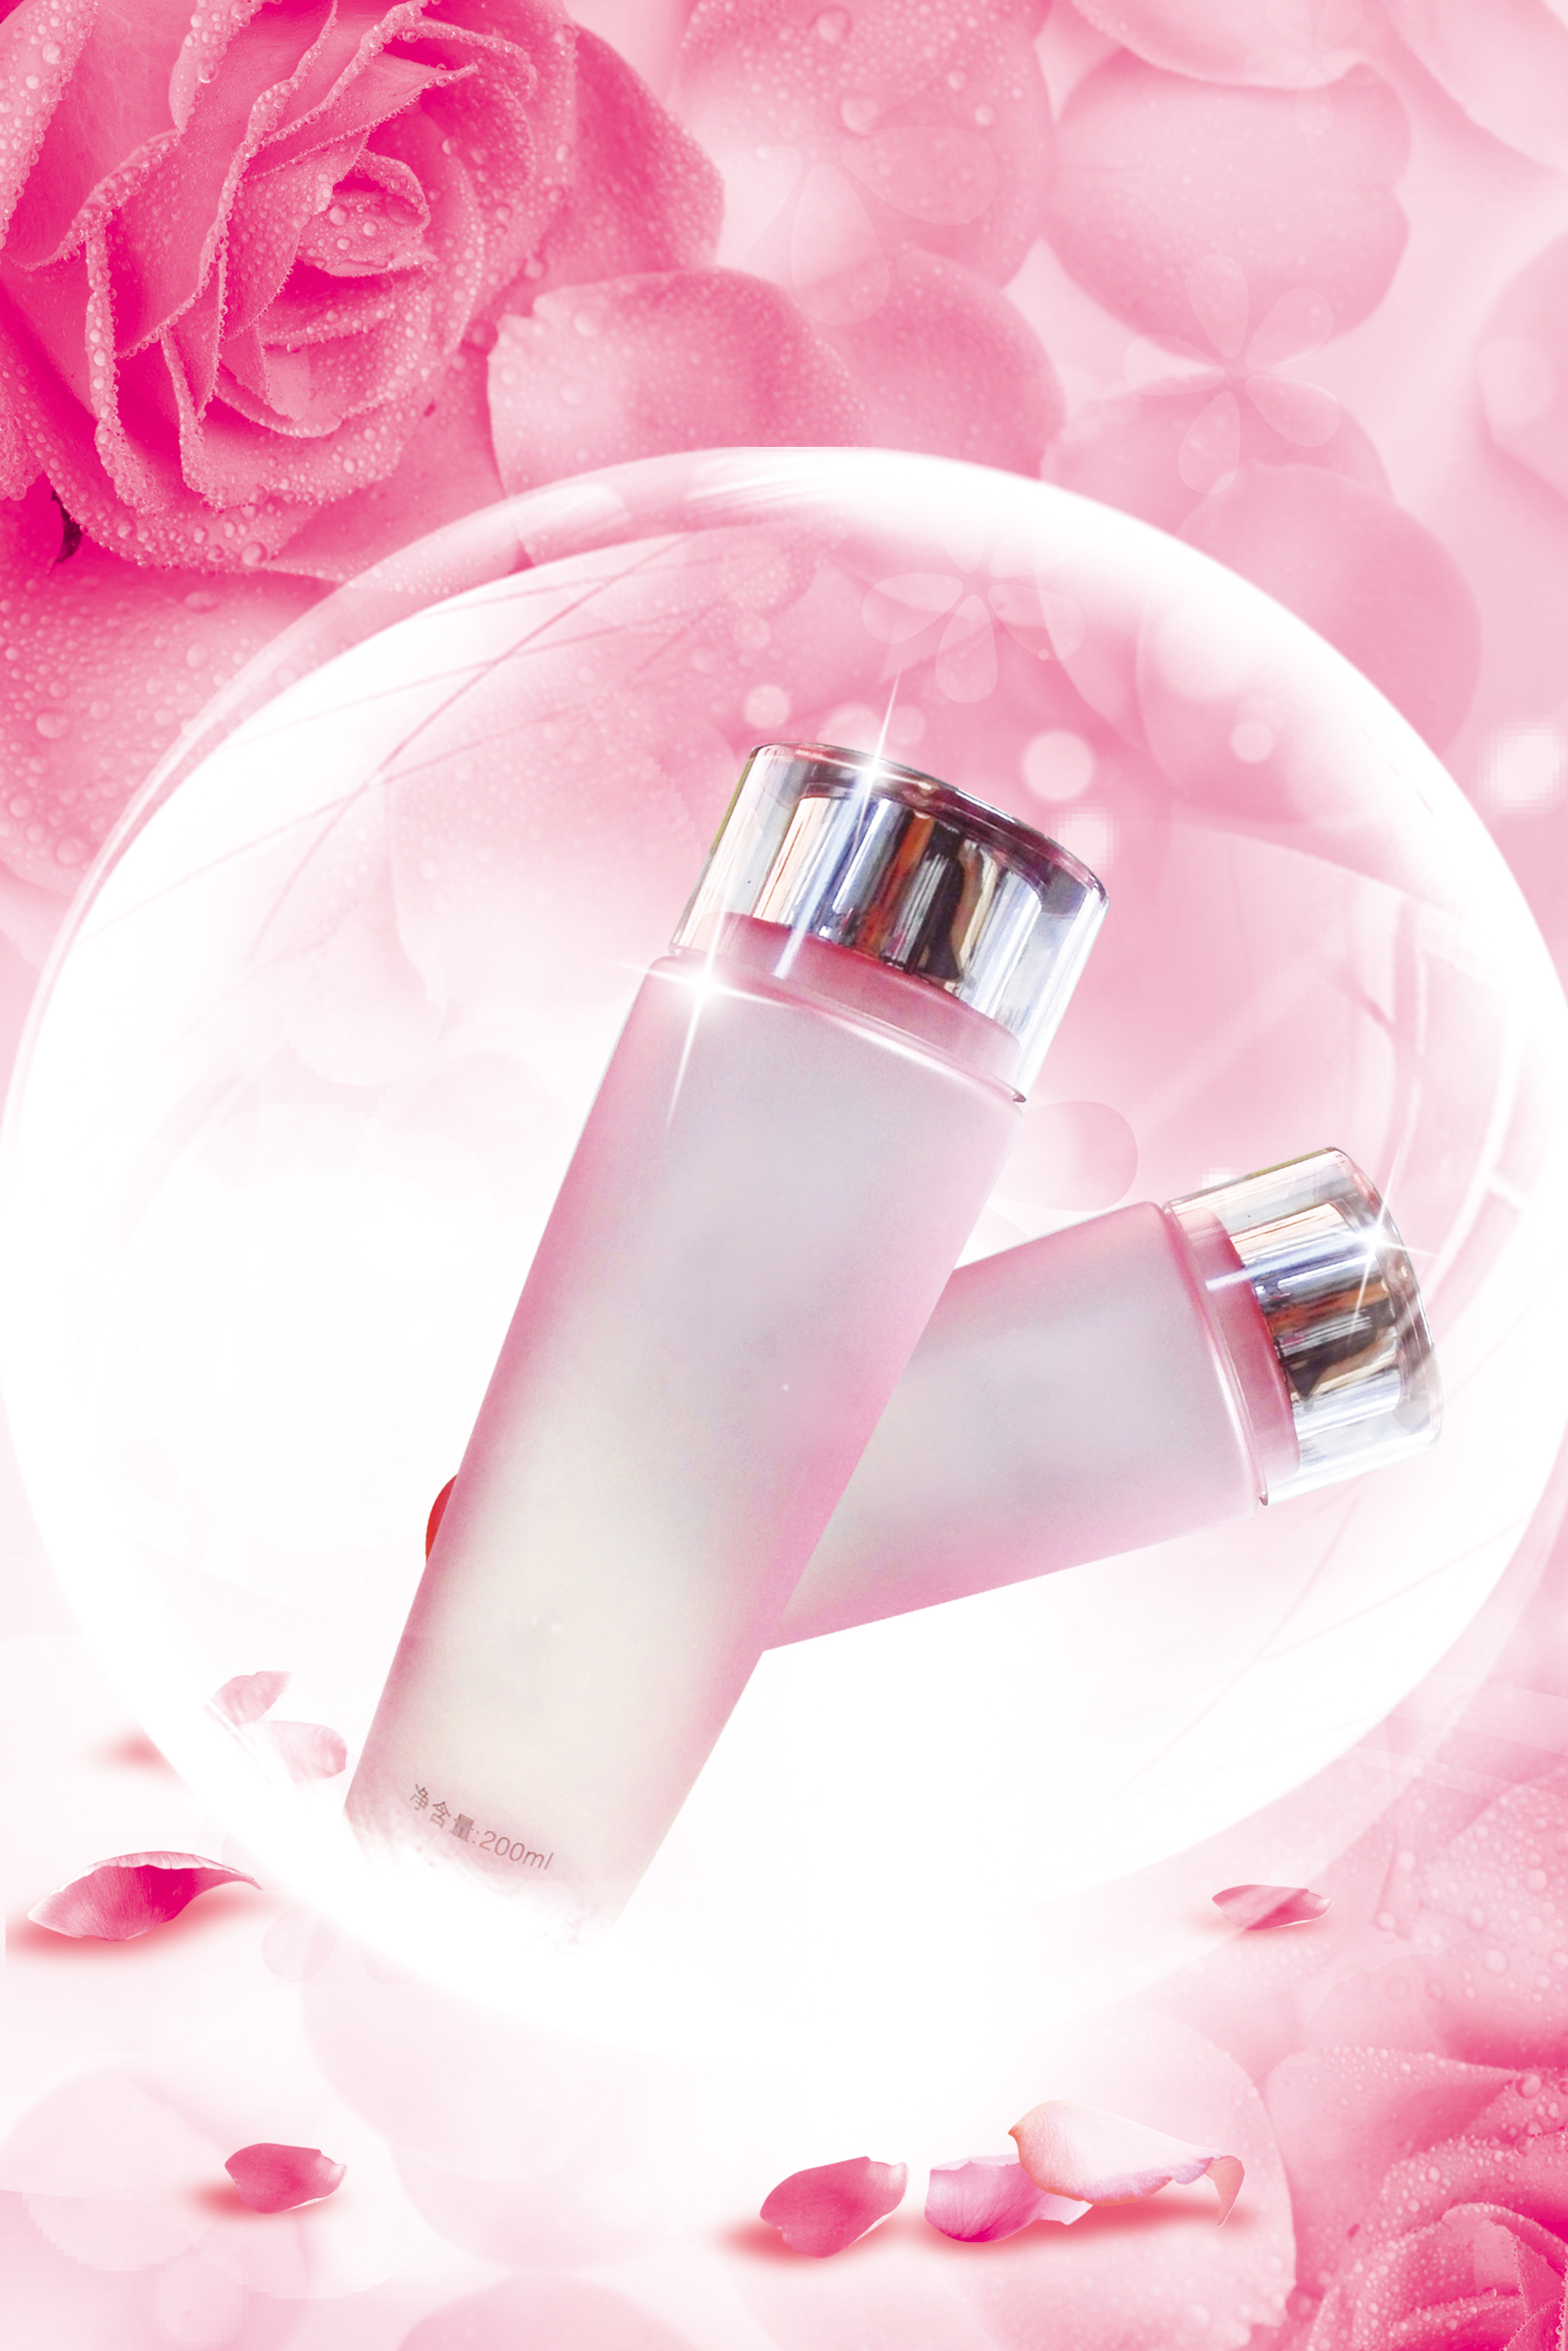 Perfume Toiletry Pink Care Background Flower Body Hand Background